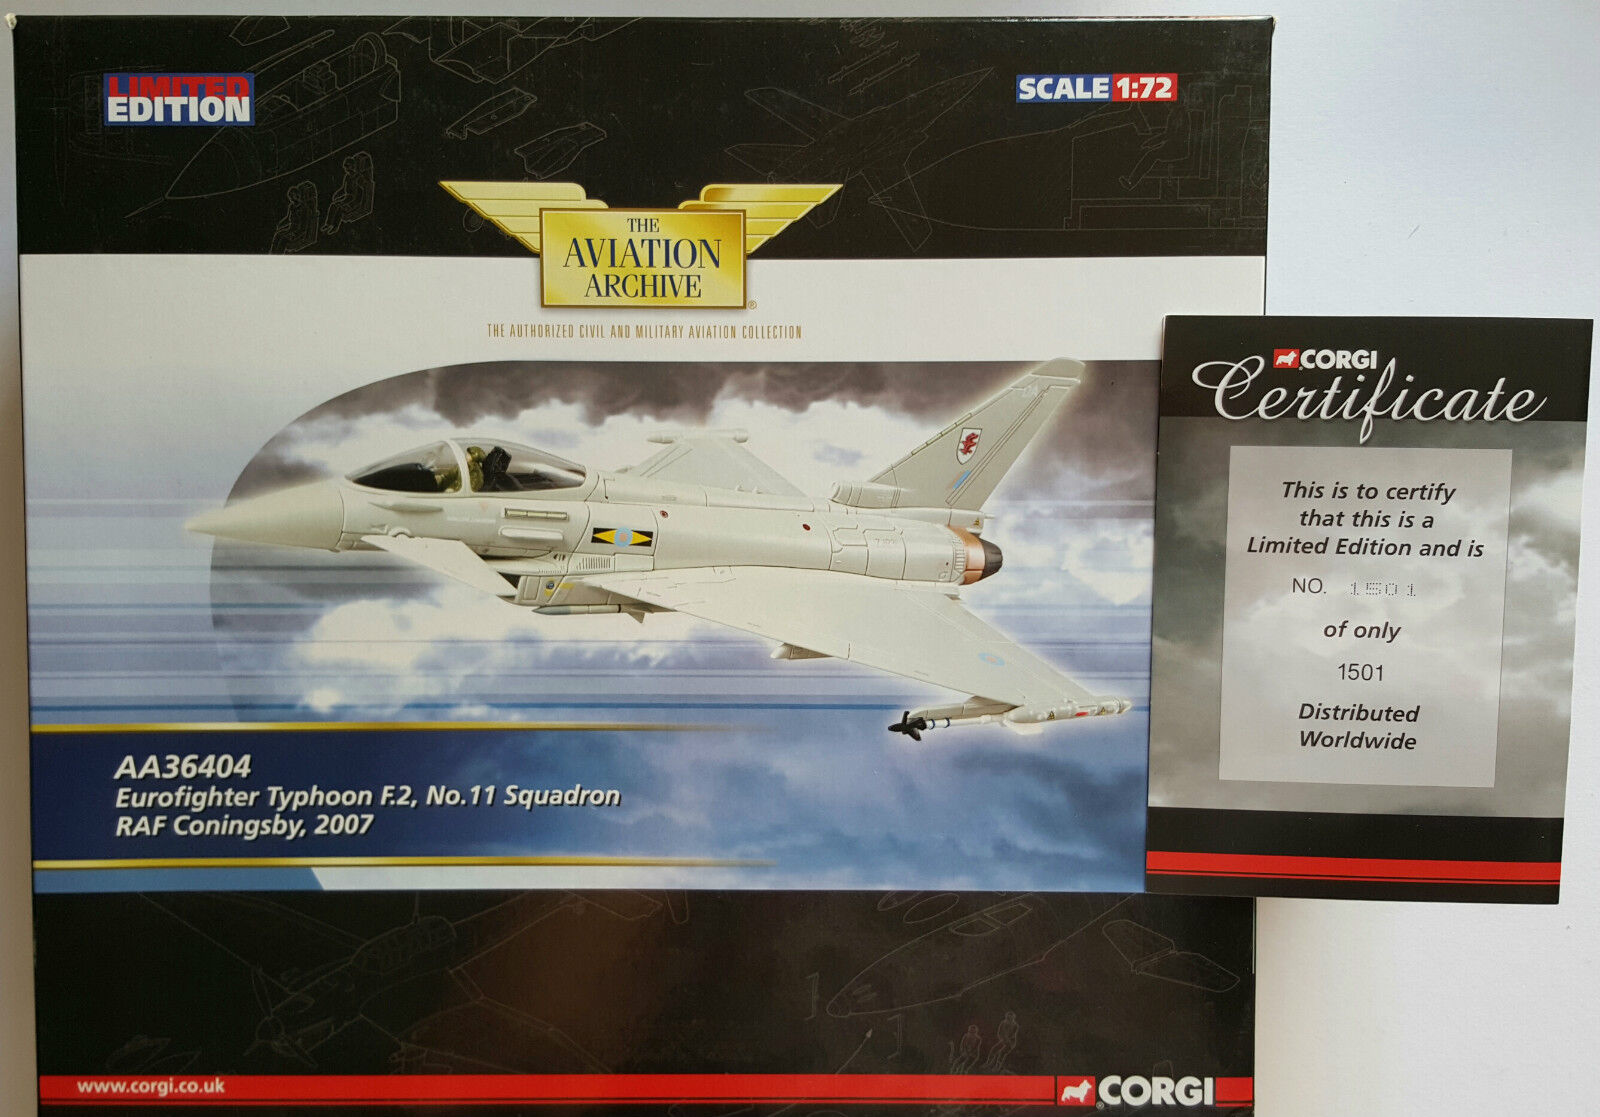 Corgi Aviation Eurofighter Typhoon F.2 2007 AA36404 Certificate No 1501 of 1501